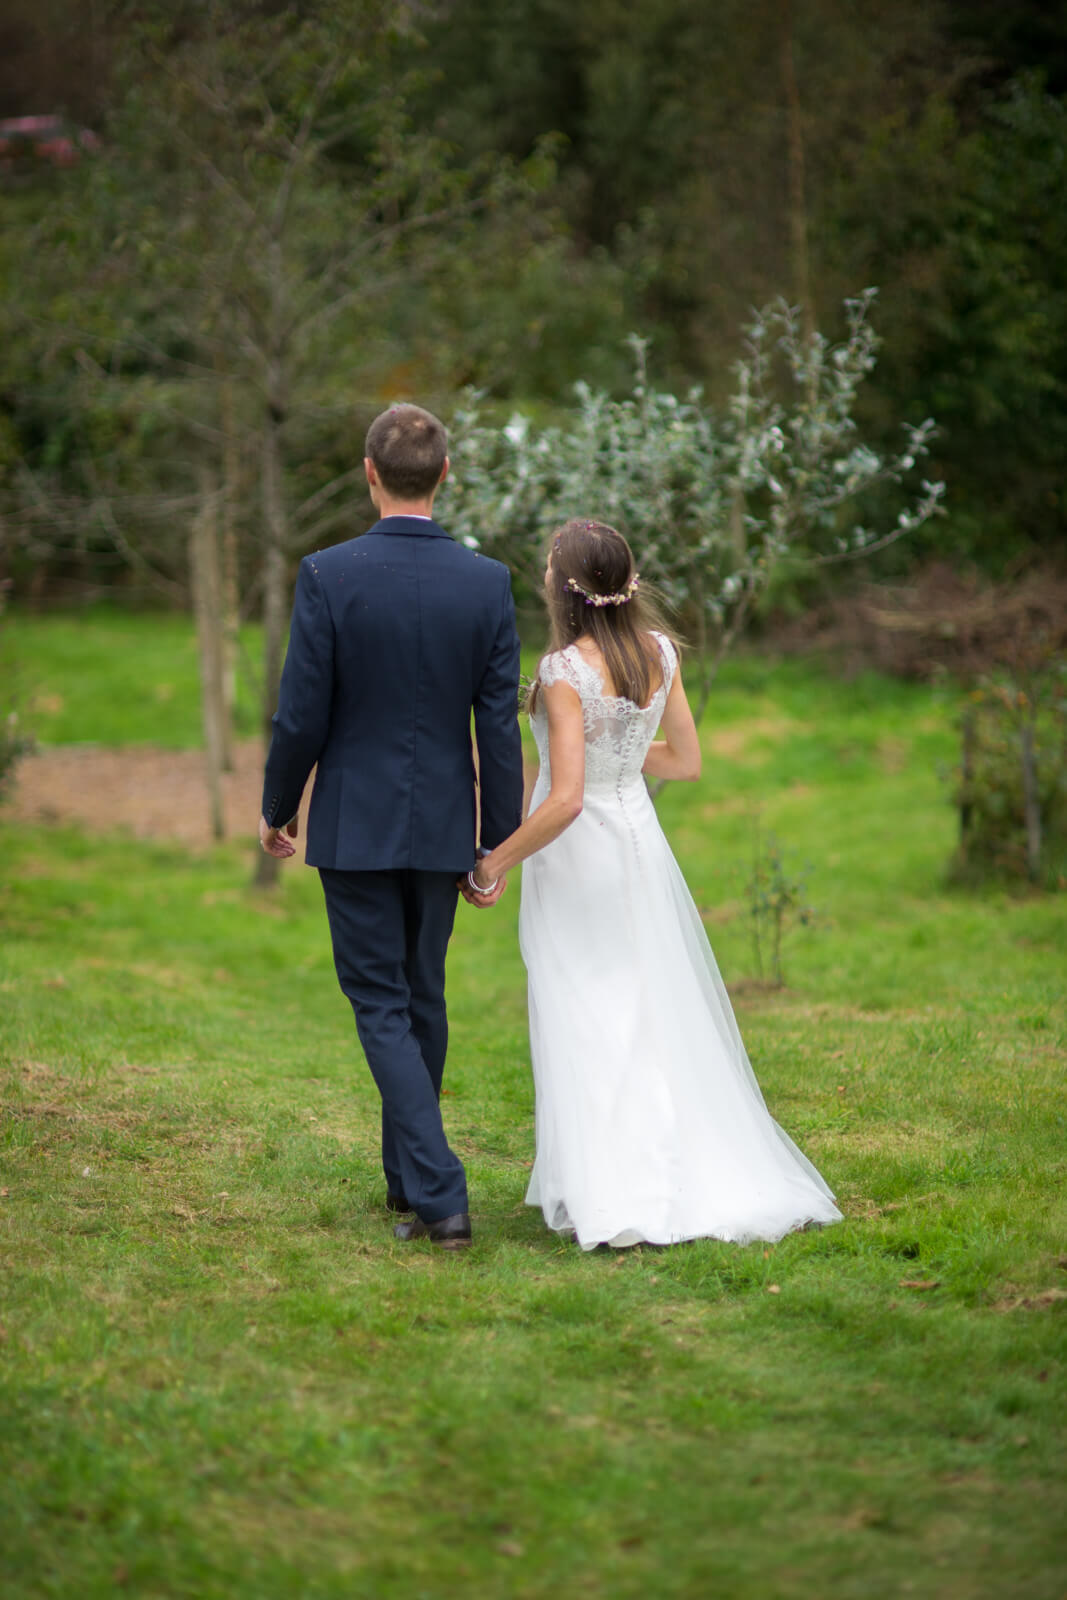 Bride and groom walking away down a grassy slope